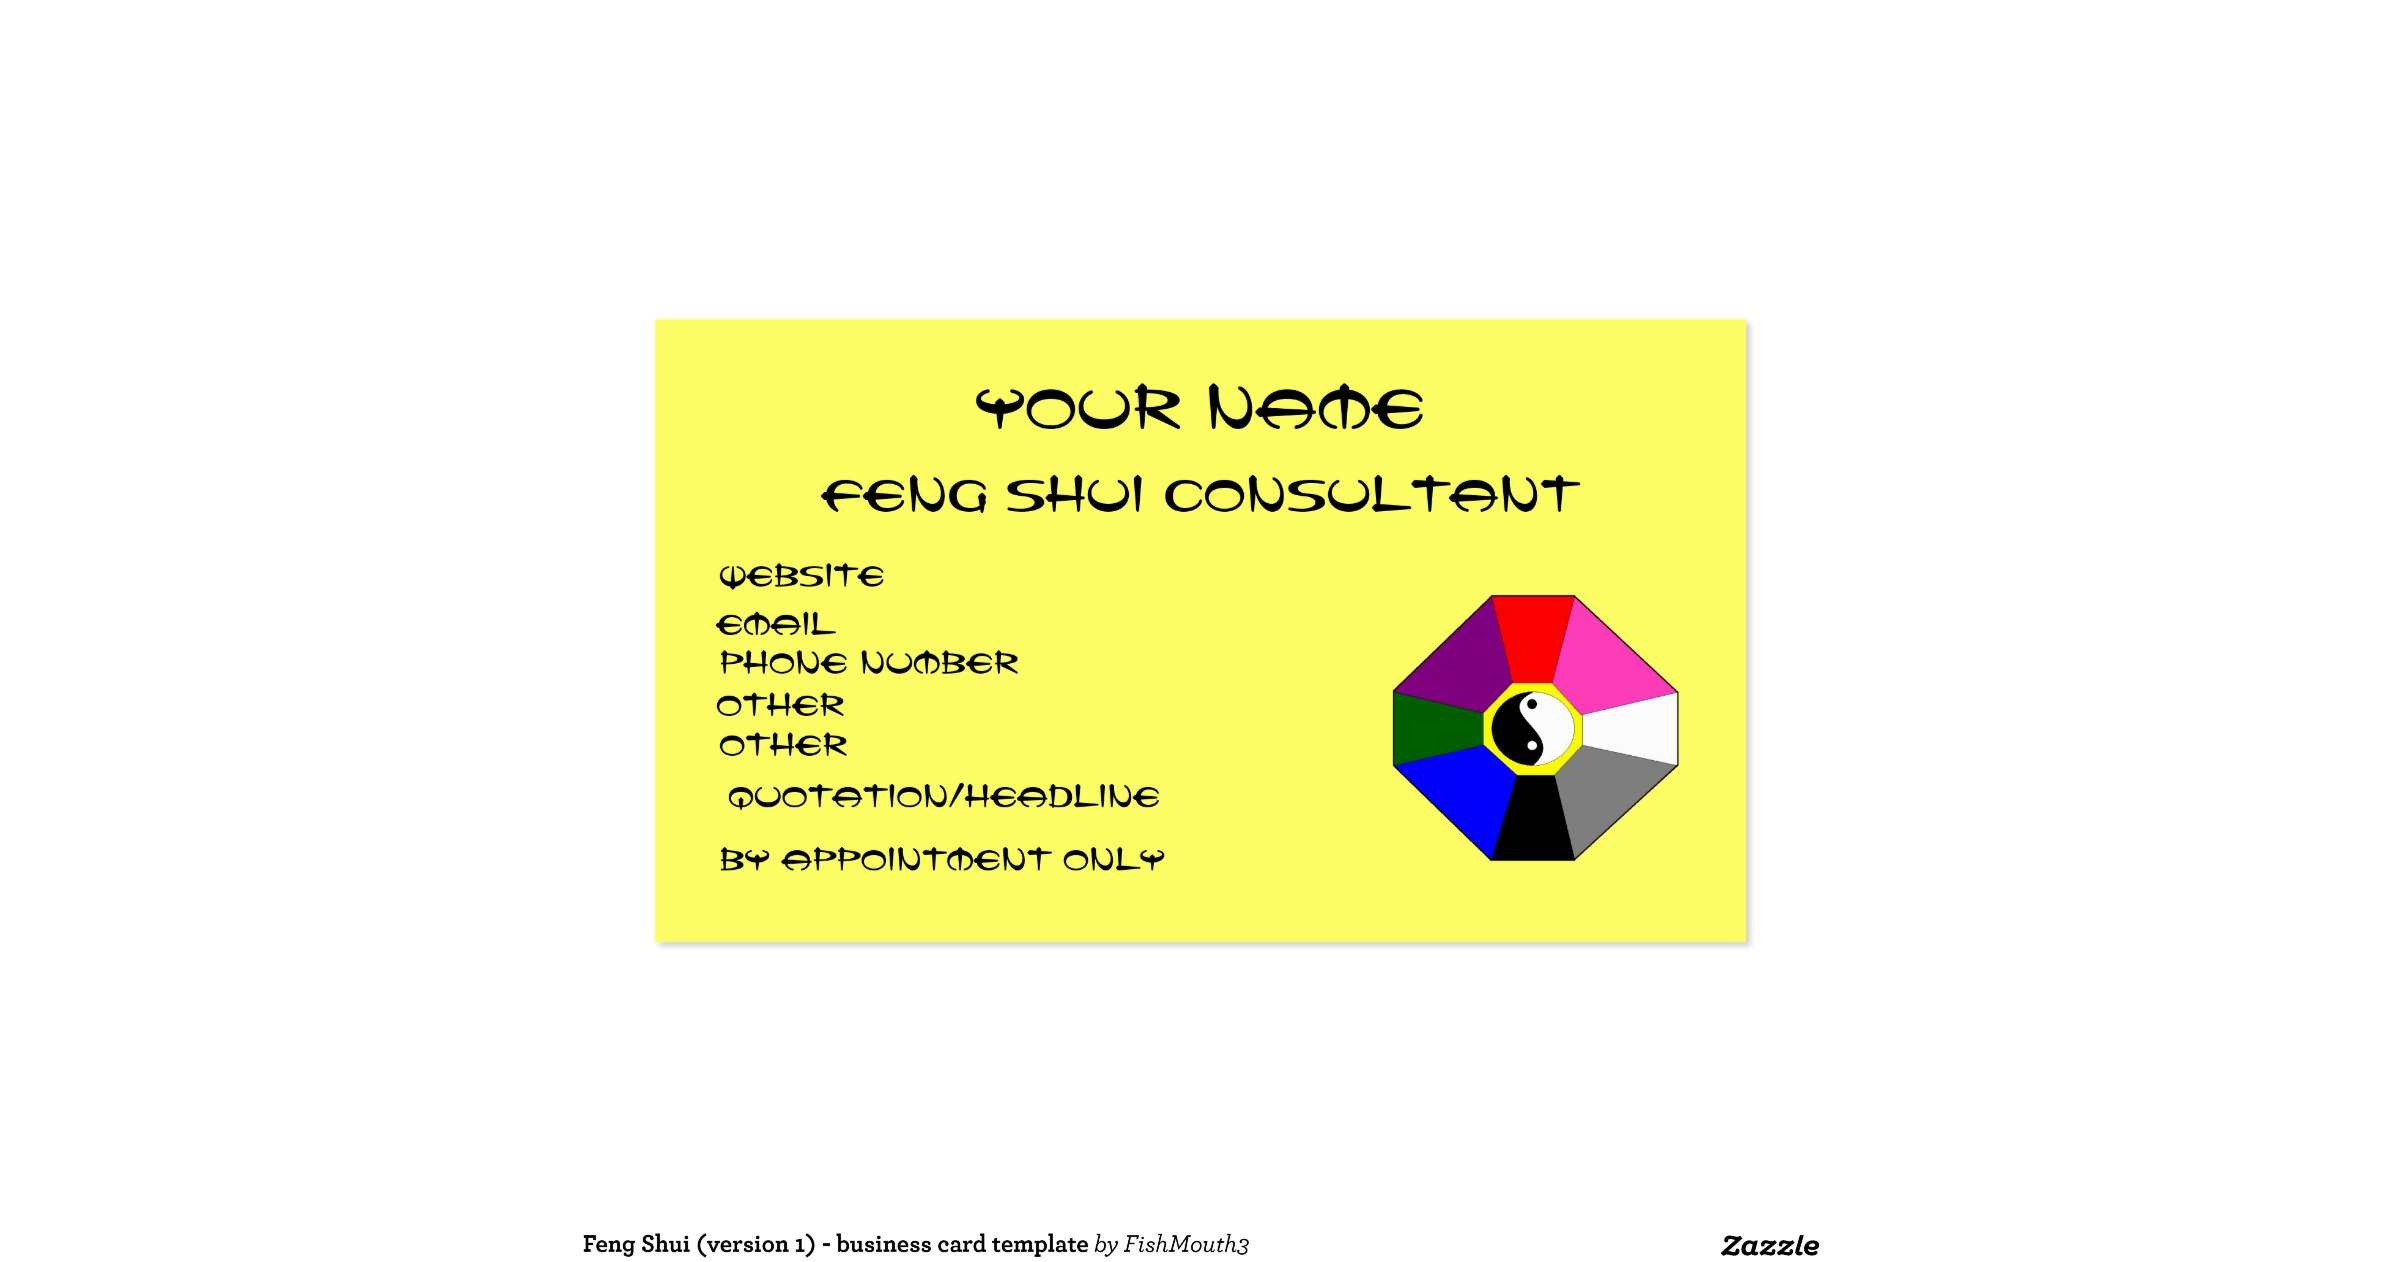 Feng shui version 1 business card template for Feng shui business cards